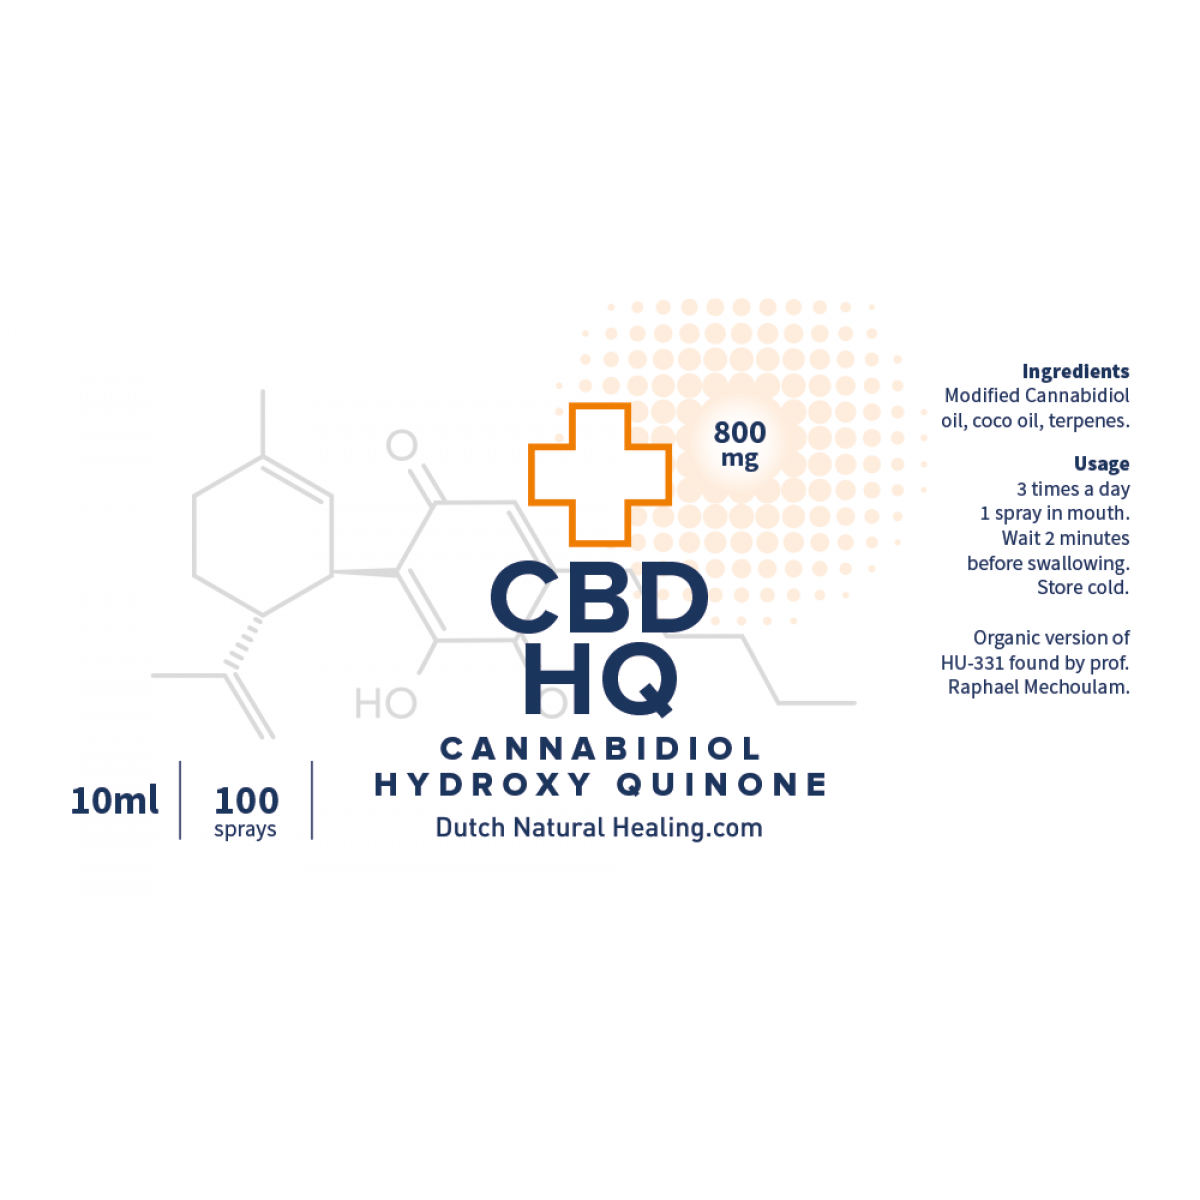 CBD Hydroxy Quinone 10ml - 8% (800mg CBD HQ)